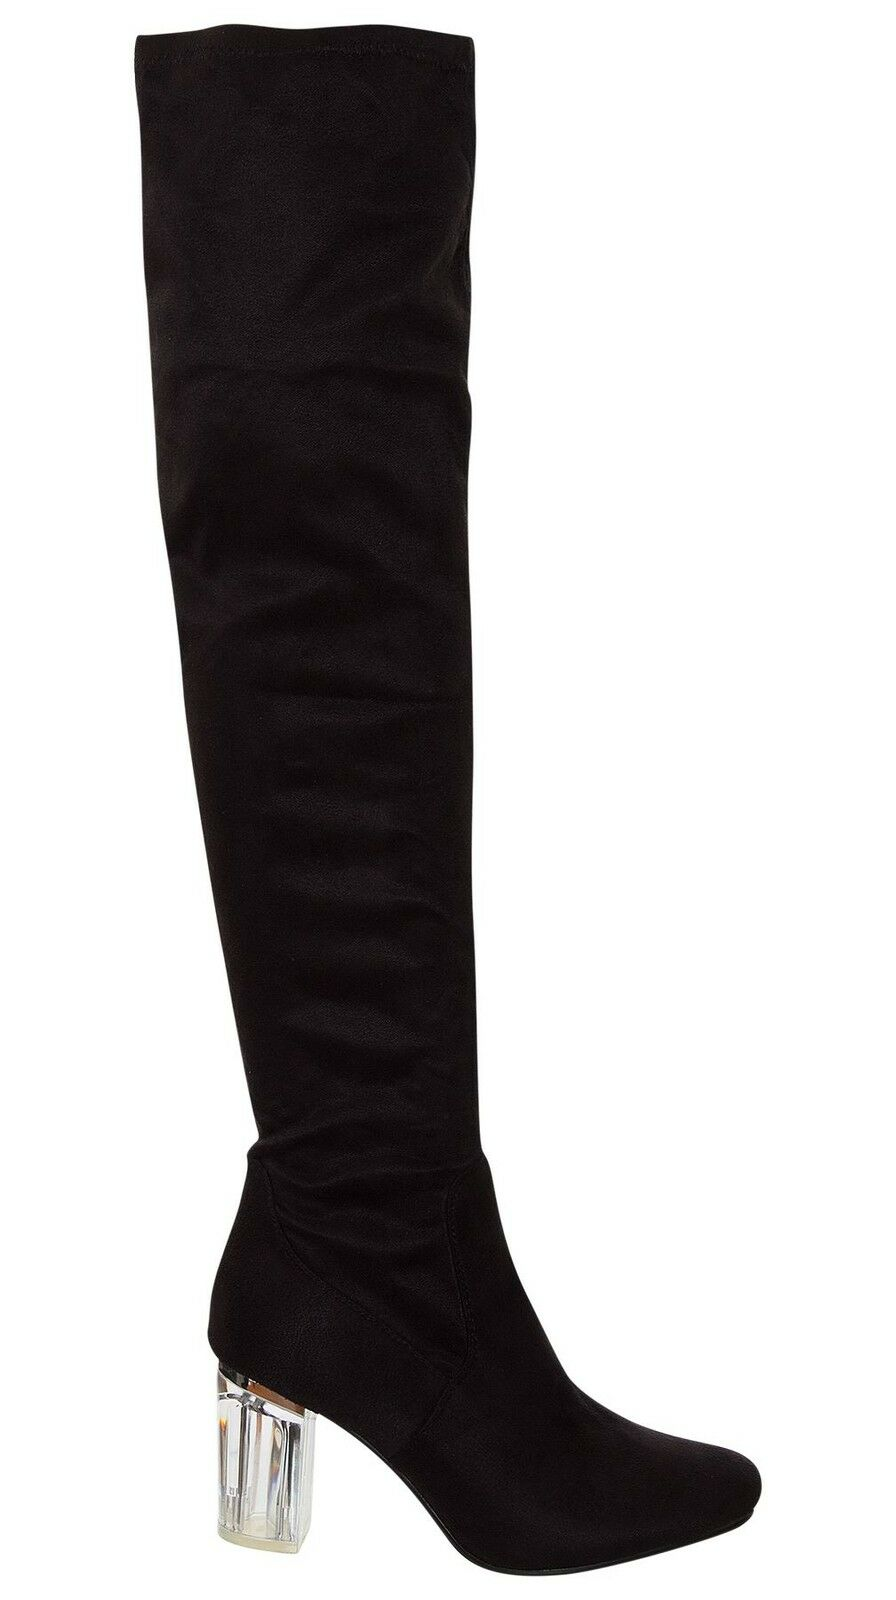 Womens Thigh High Over the Knee Party Boots Stretch Block Mid Size Perspex Heel